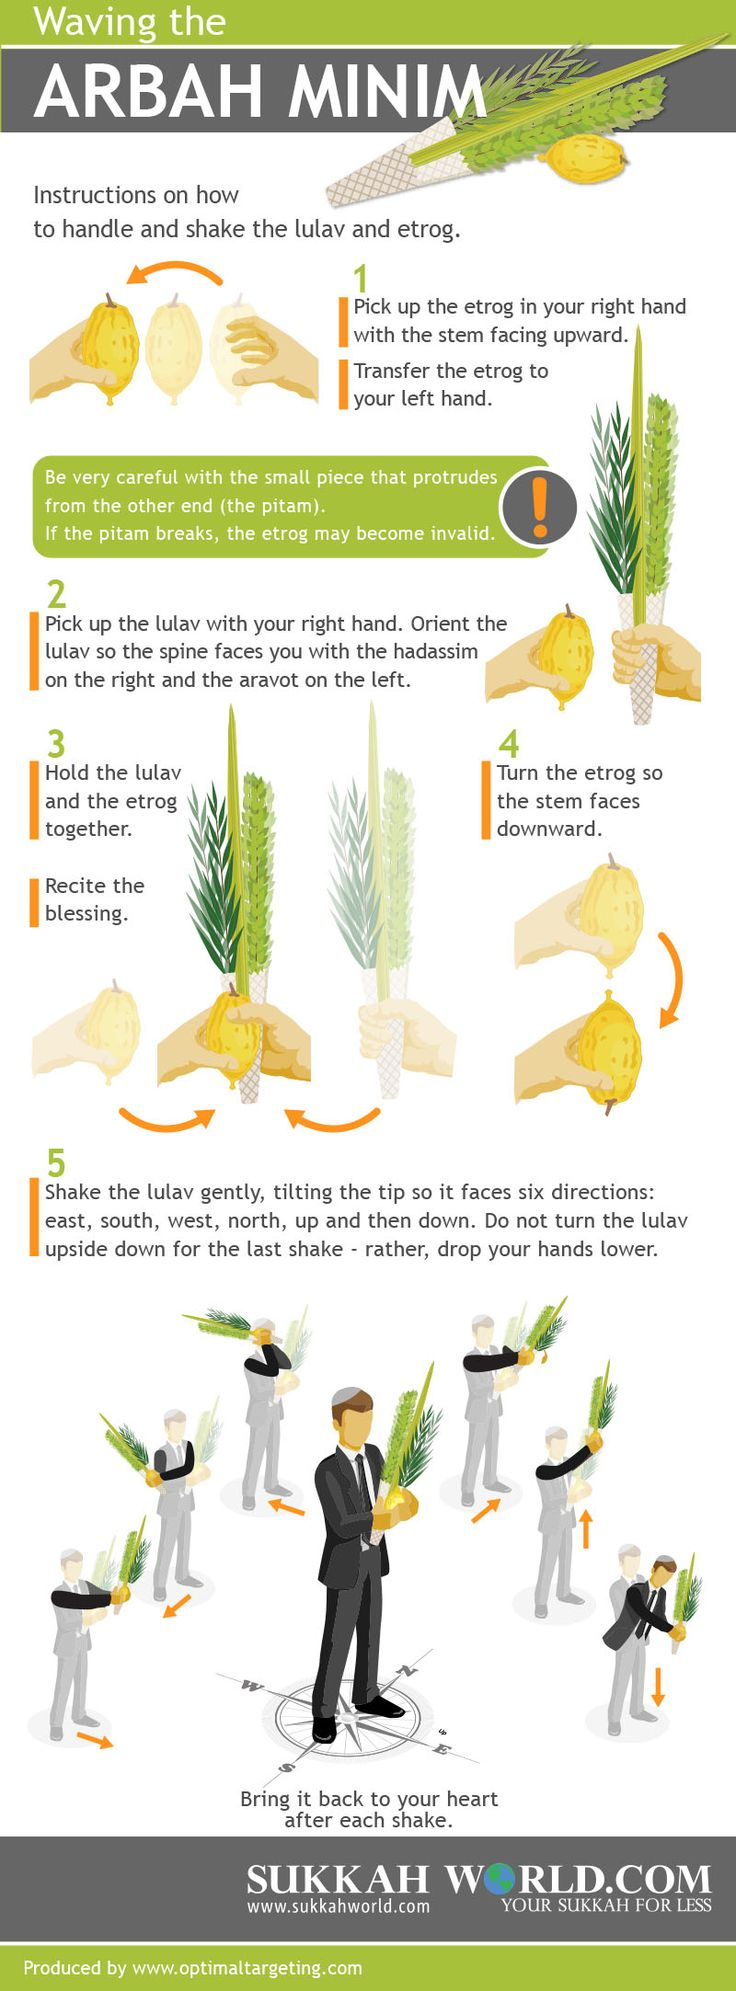 Waving The Arbah Minim an Infographic by: www.sukkahworld.com